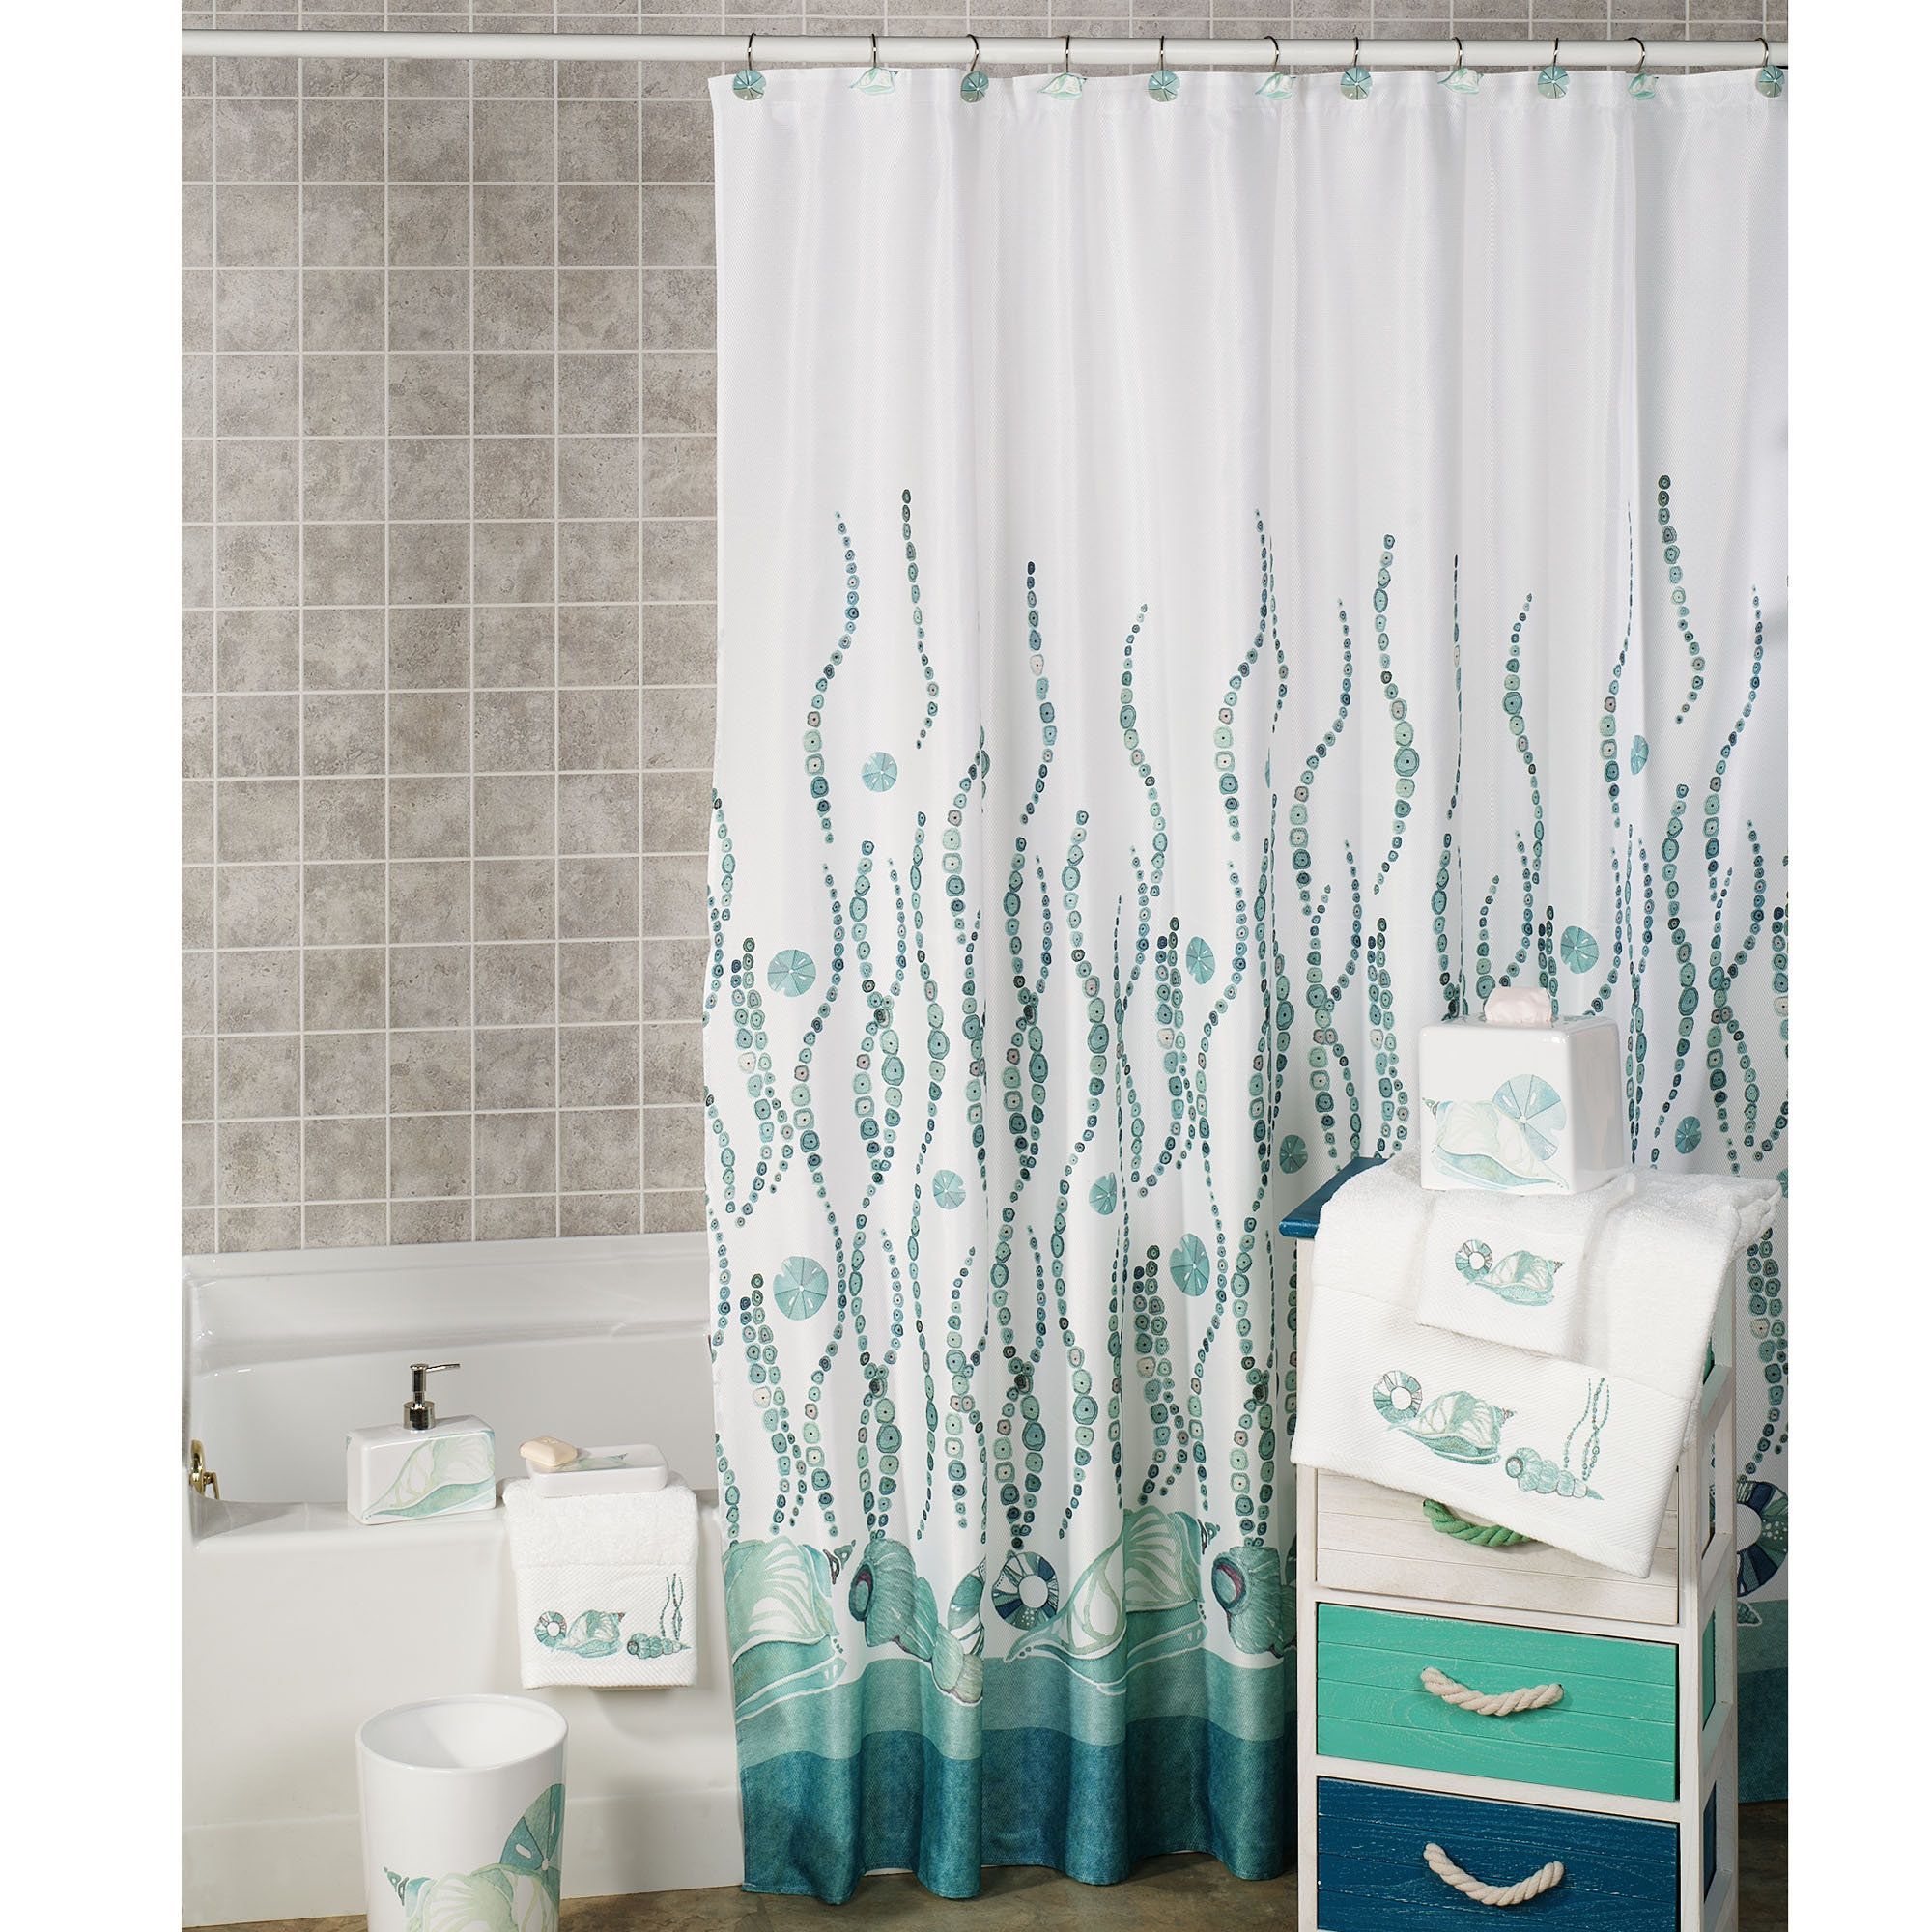 La Mer Coastal Shower Curtain Coral Shower Curtains Beachy Shower Curtain Beach Shower Curtains